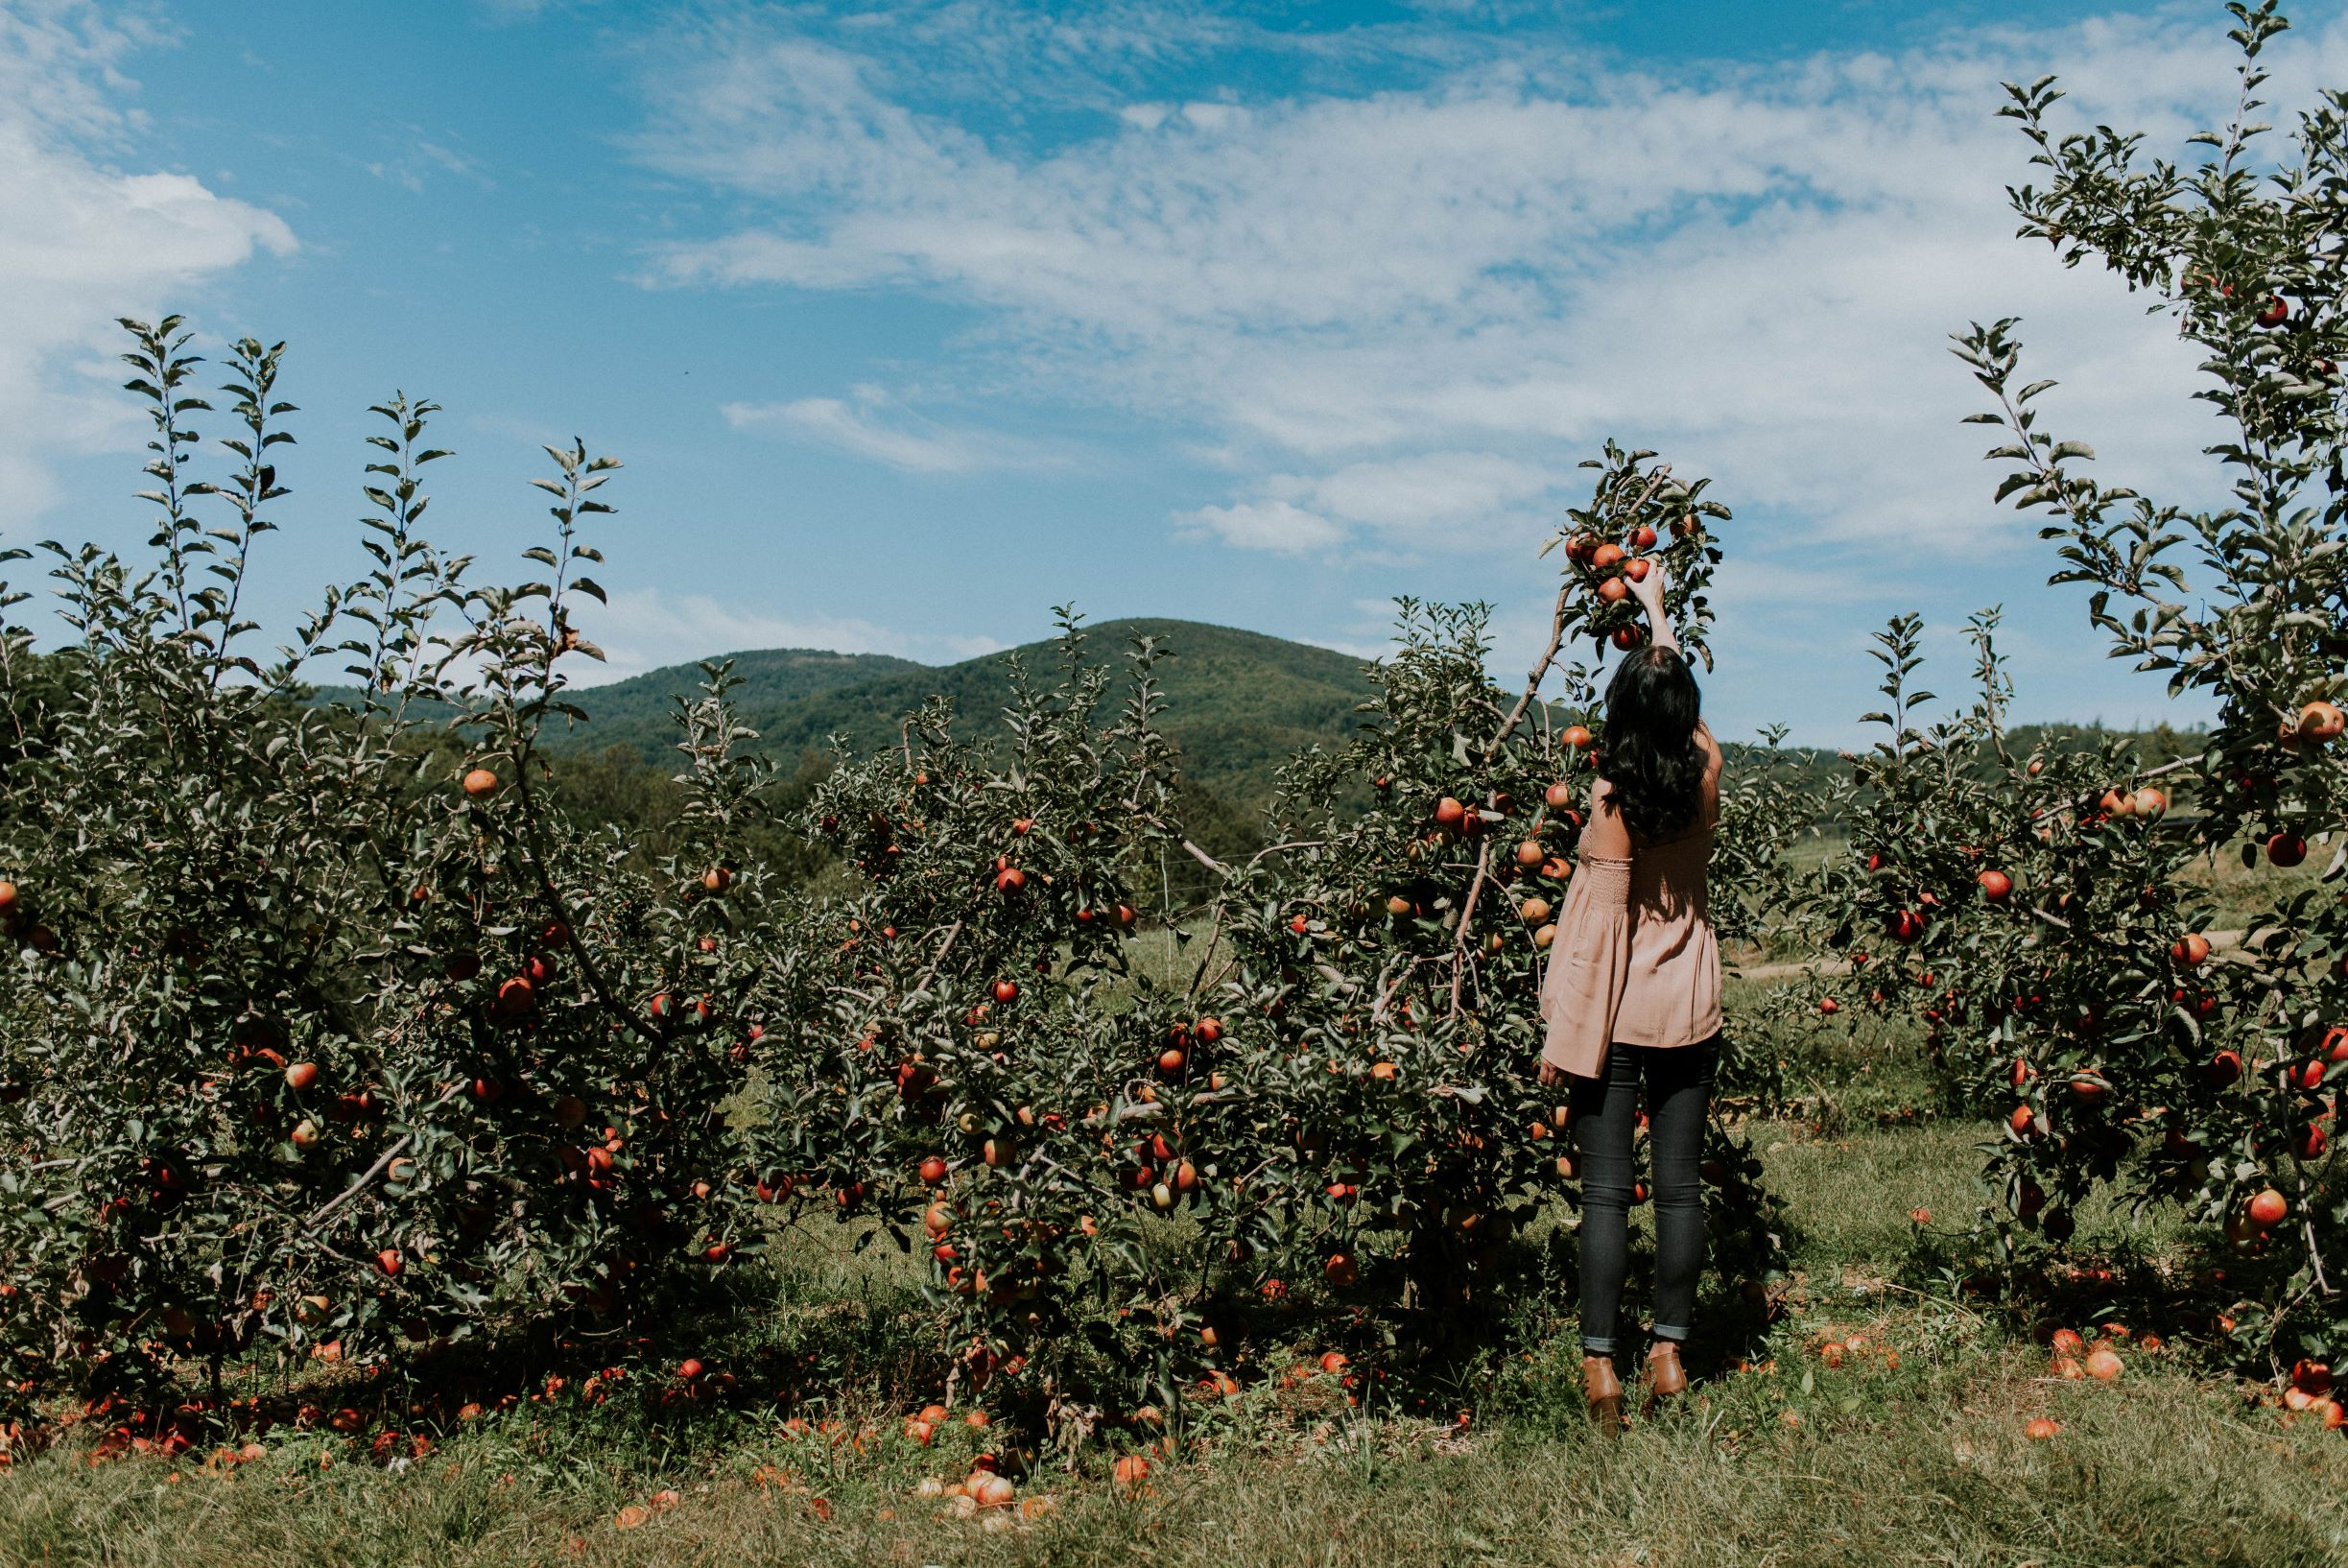 picking apples from apple orchard